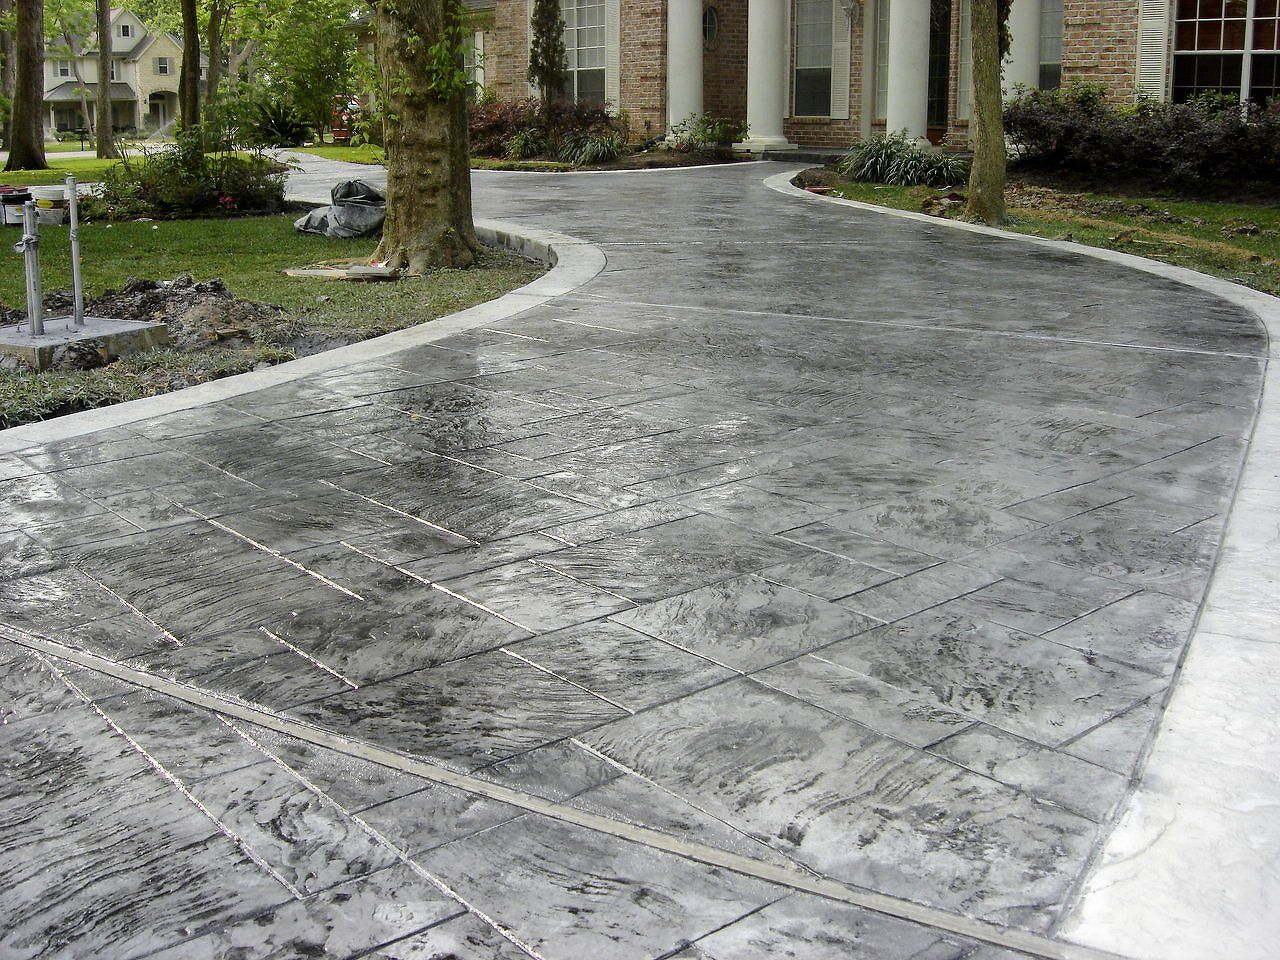 50 Best Driveway Ideas To Improve The Appeal Of Your House Stamped Concrete Driveway Driveway Design Modern Driveway